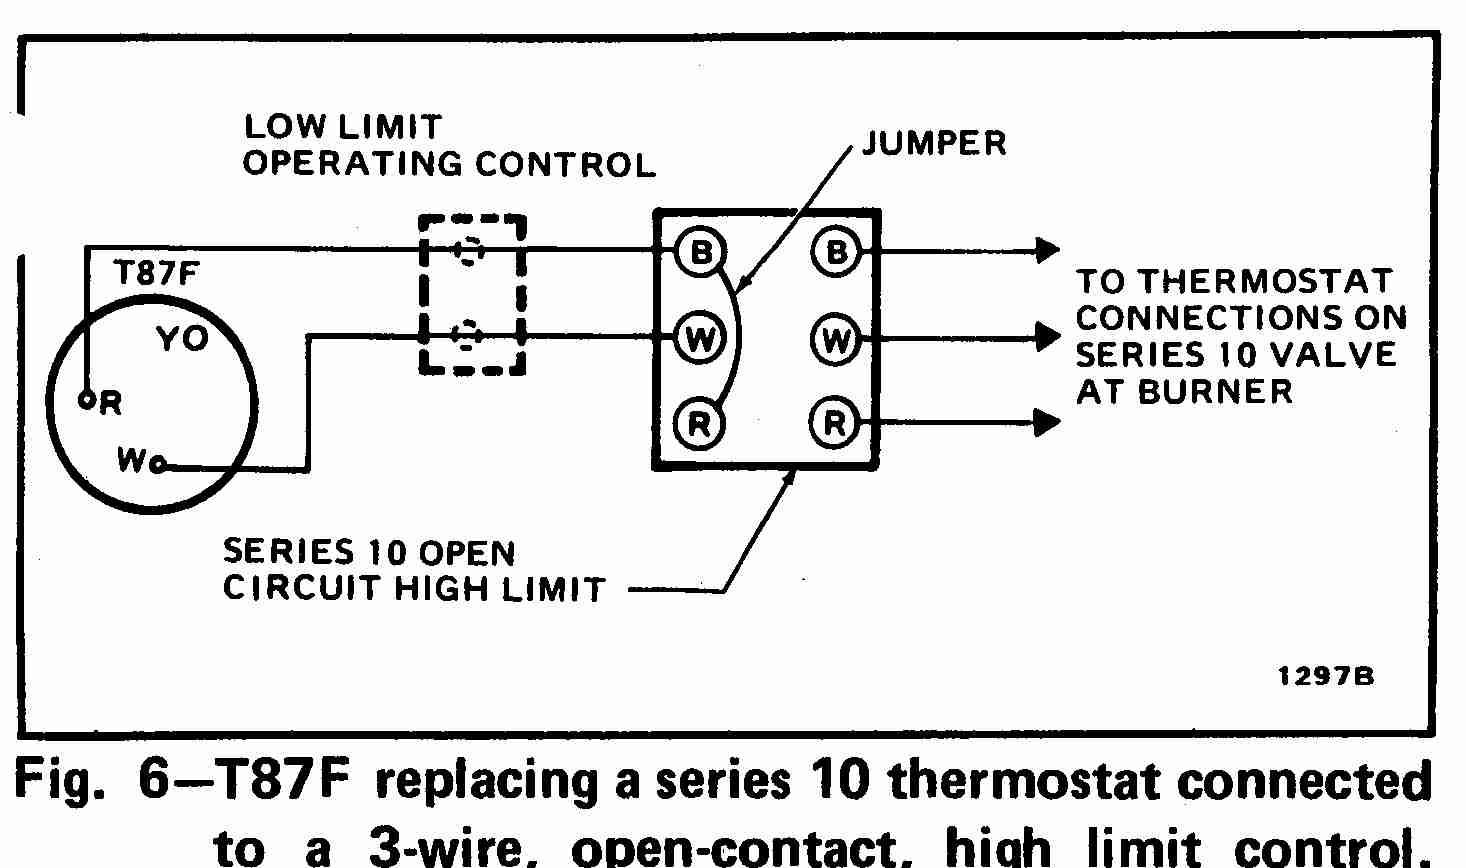 Room thermostat wiring diagrams for hvac systems 3 wire high limit honeywell t87f thermostat wiring diagram asfbconference2016 Gallery